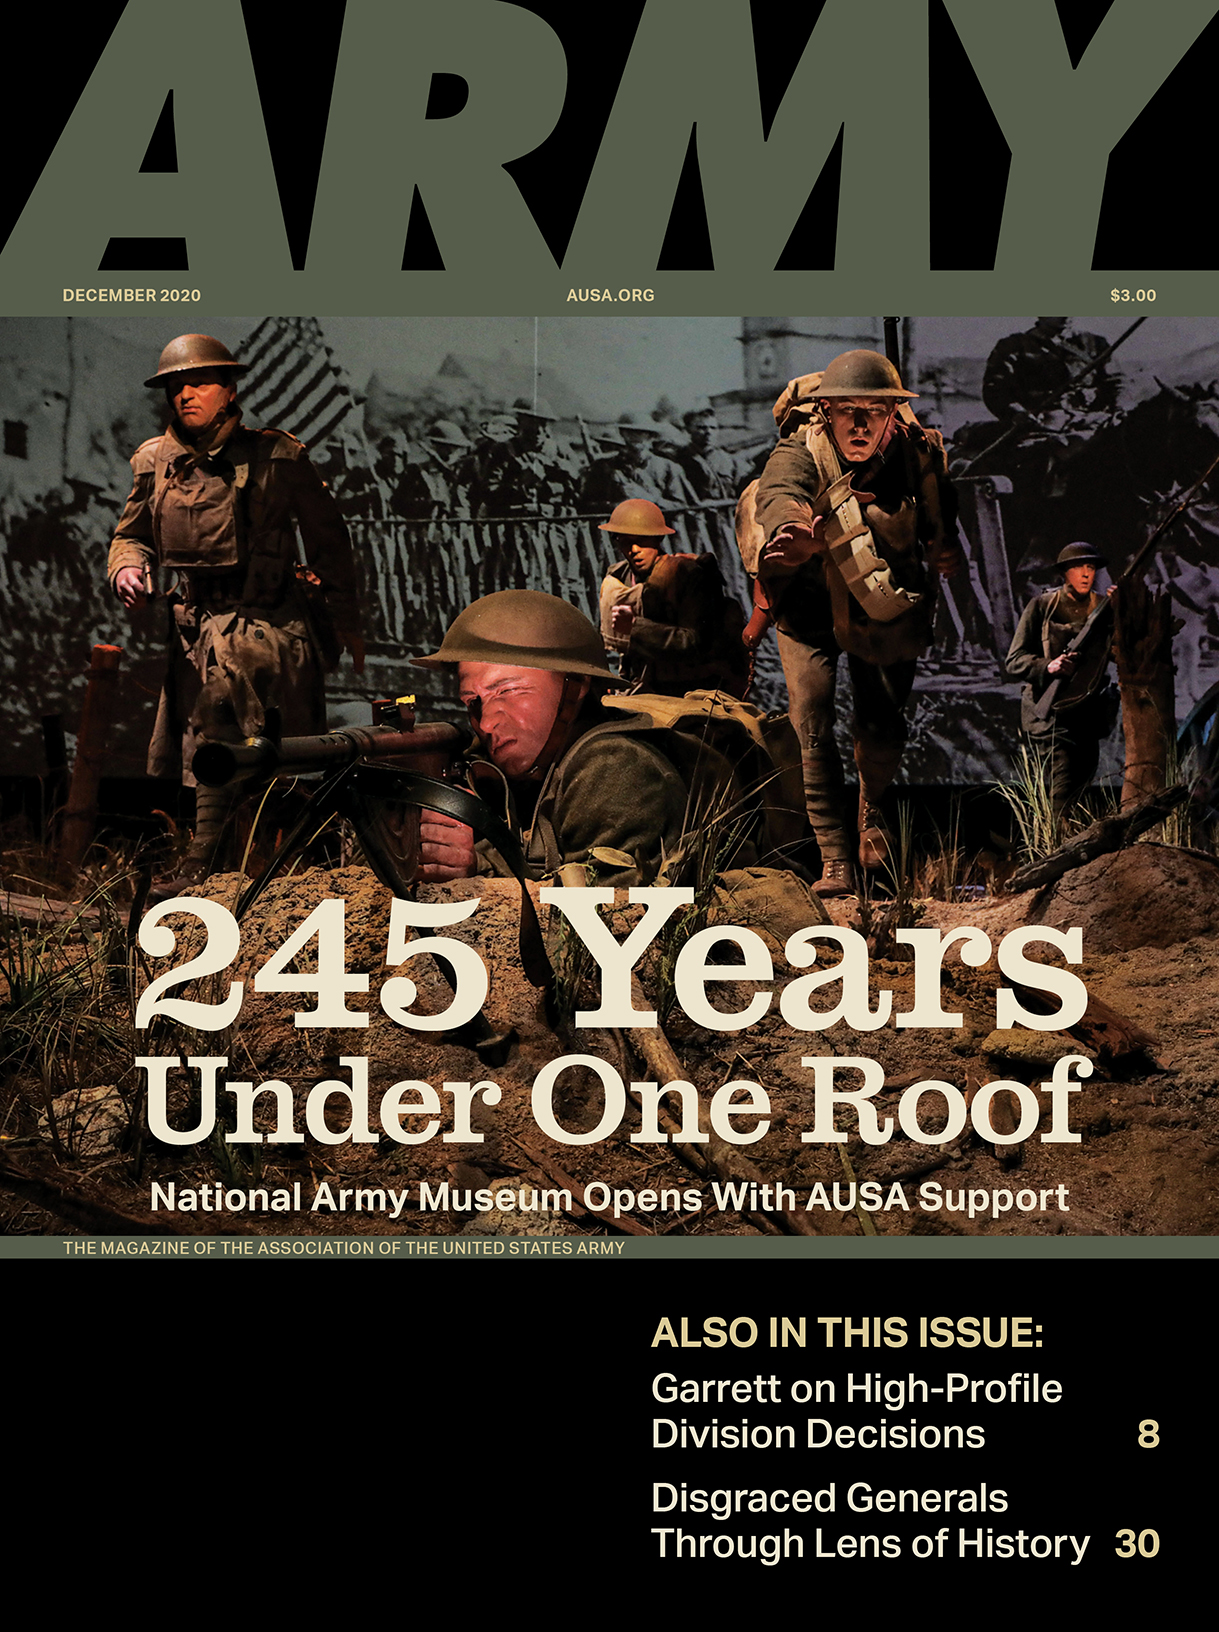 ARMY Magazine Vol. 70, No. 12, December 2020